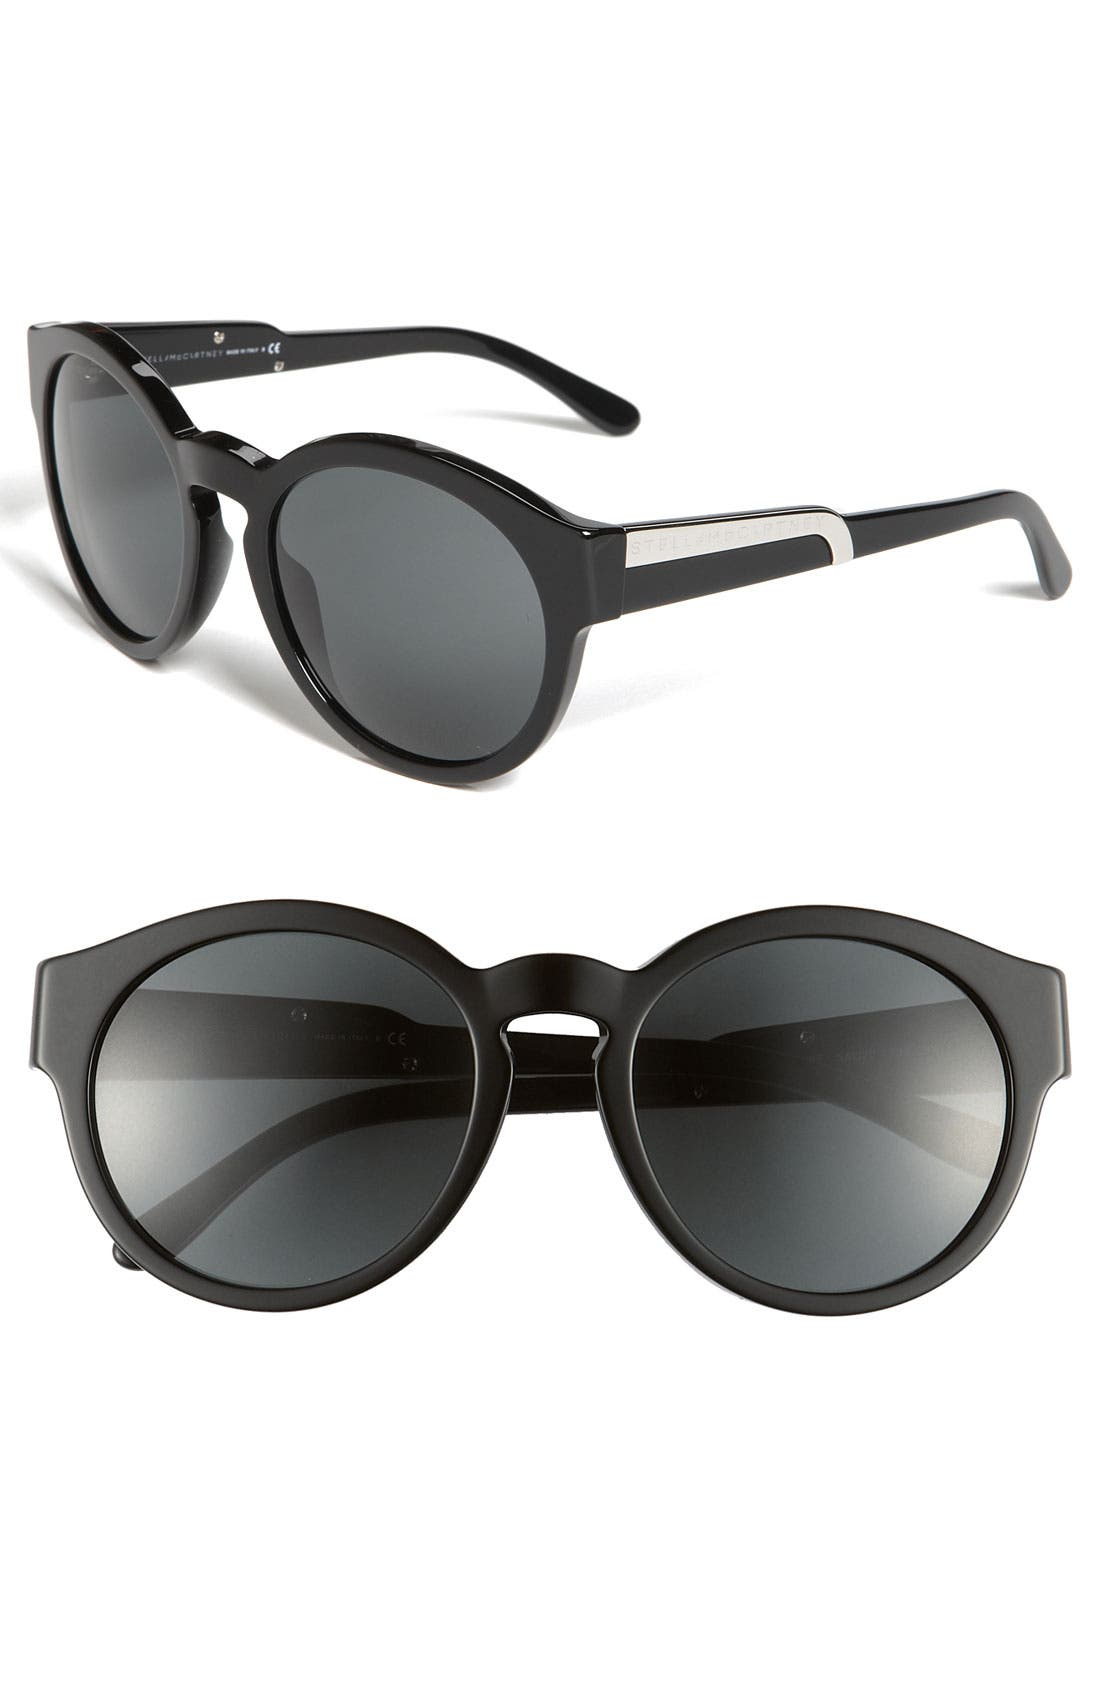 Main Image - Stella McCartney 54mm Round Sunglasses